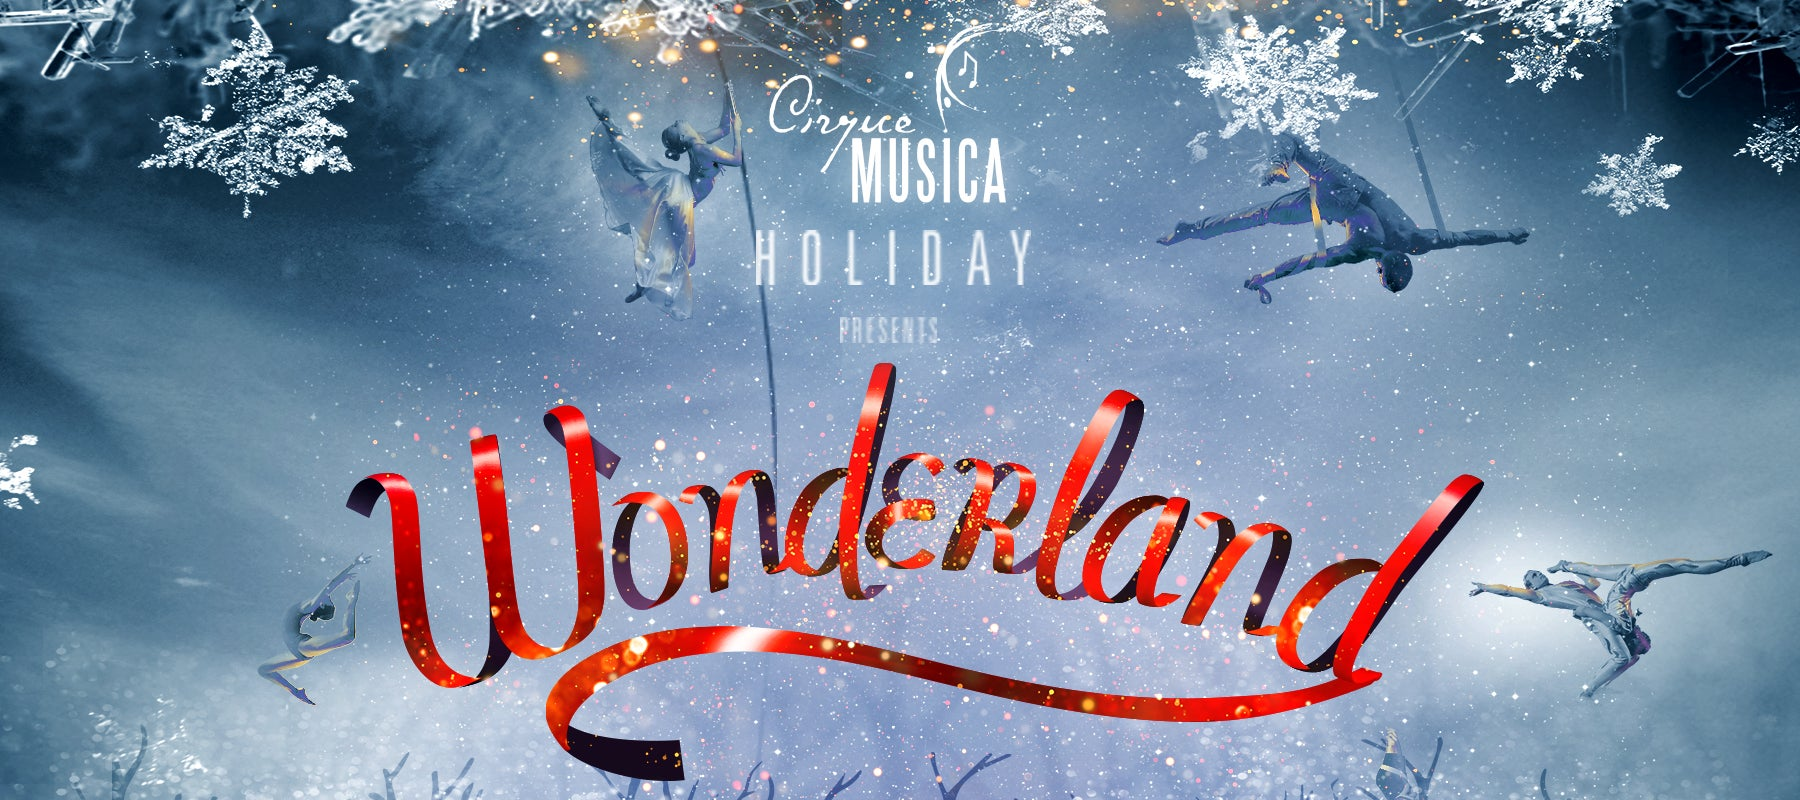 Cirque Musica Holiday presents Wonderland